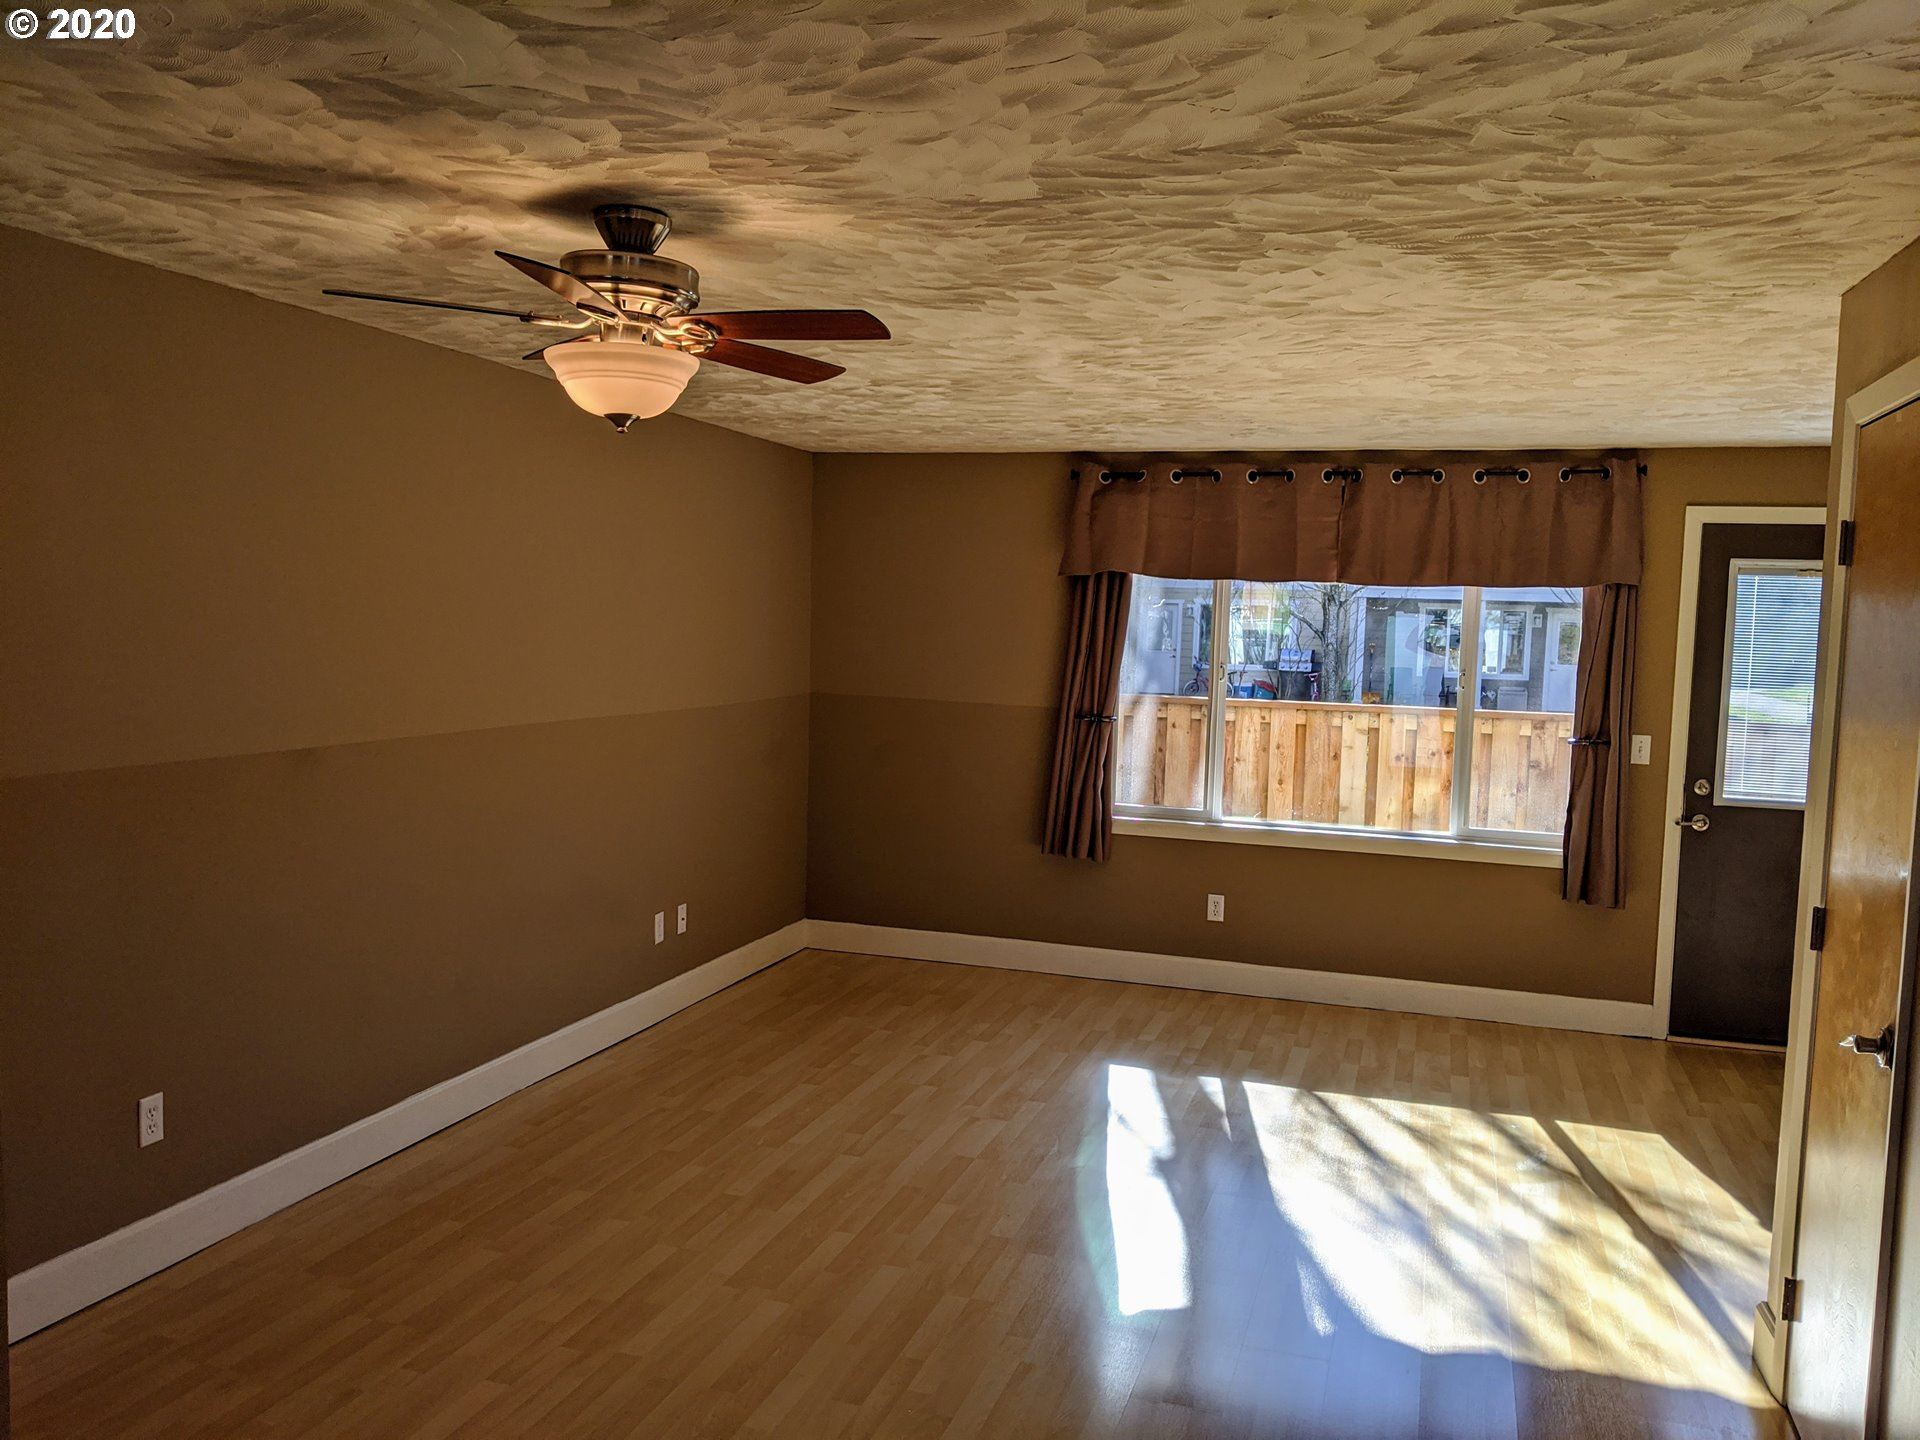 Photo of 1706 AVALON WAY #22, Hood River, OR 97031 (MLS # 20275896)